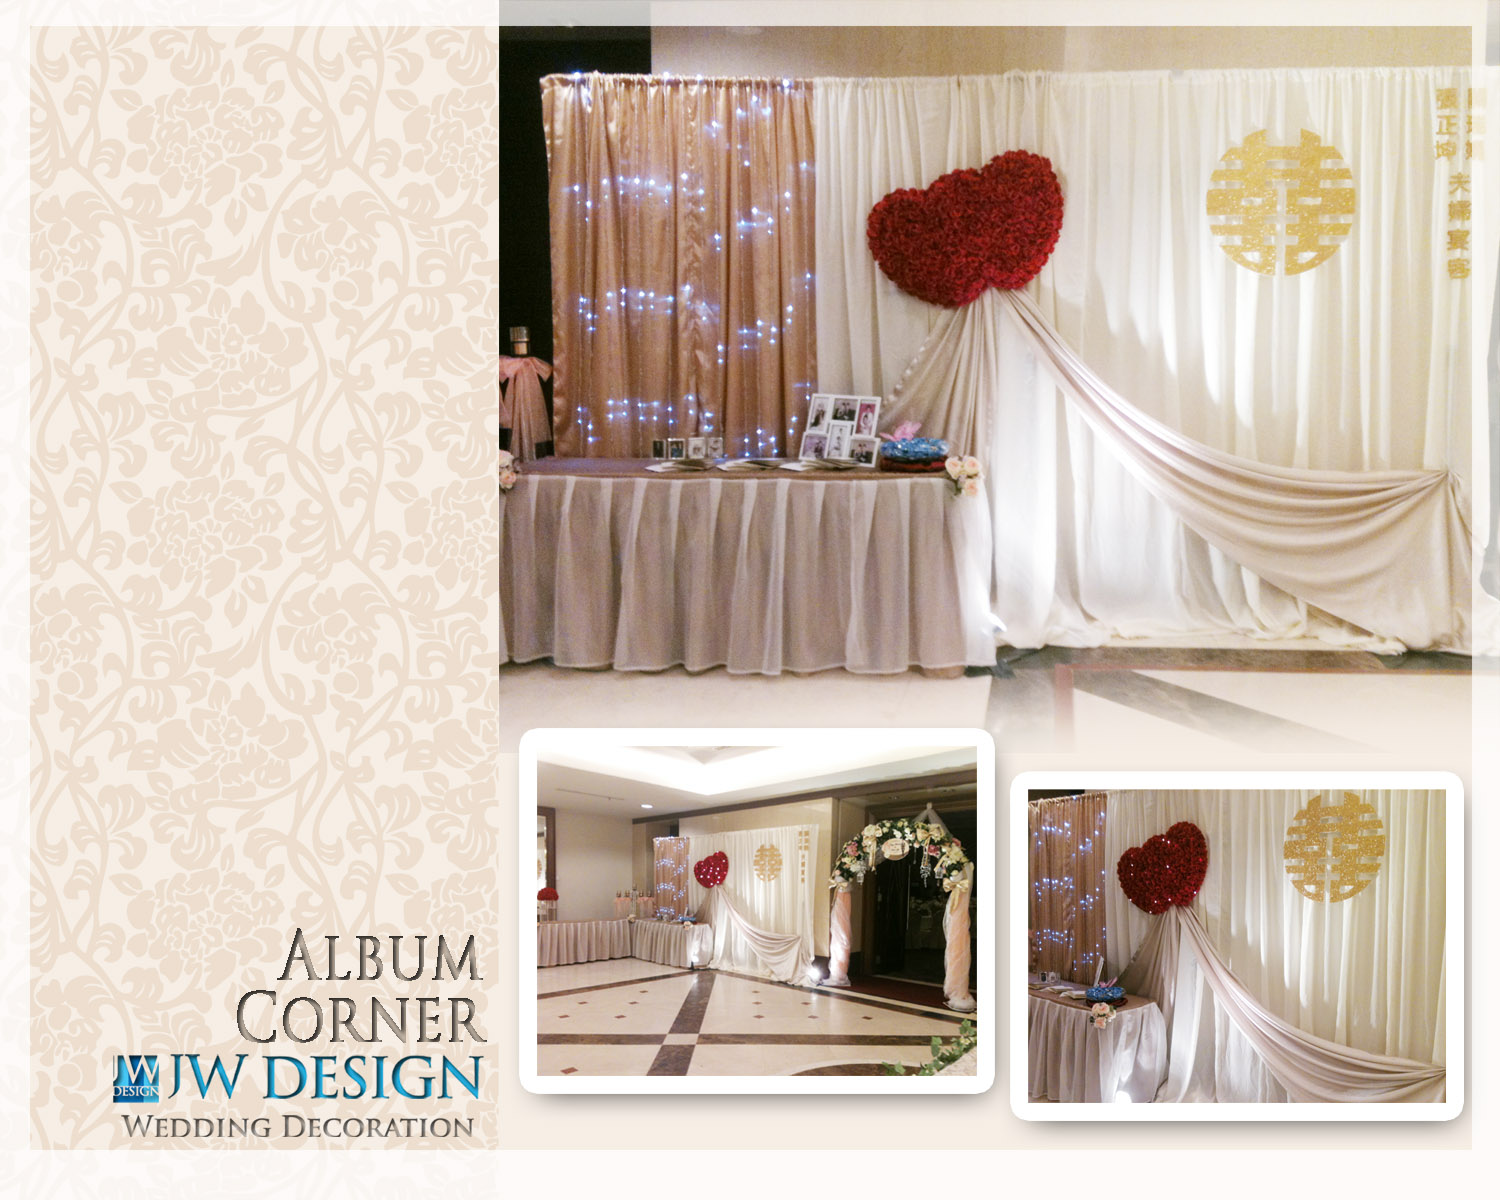 Jw design wedding decoration klang centro siew yis wedding klang centro siew yis wedding junglespirit Gallery